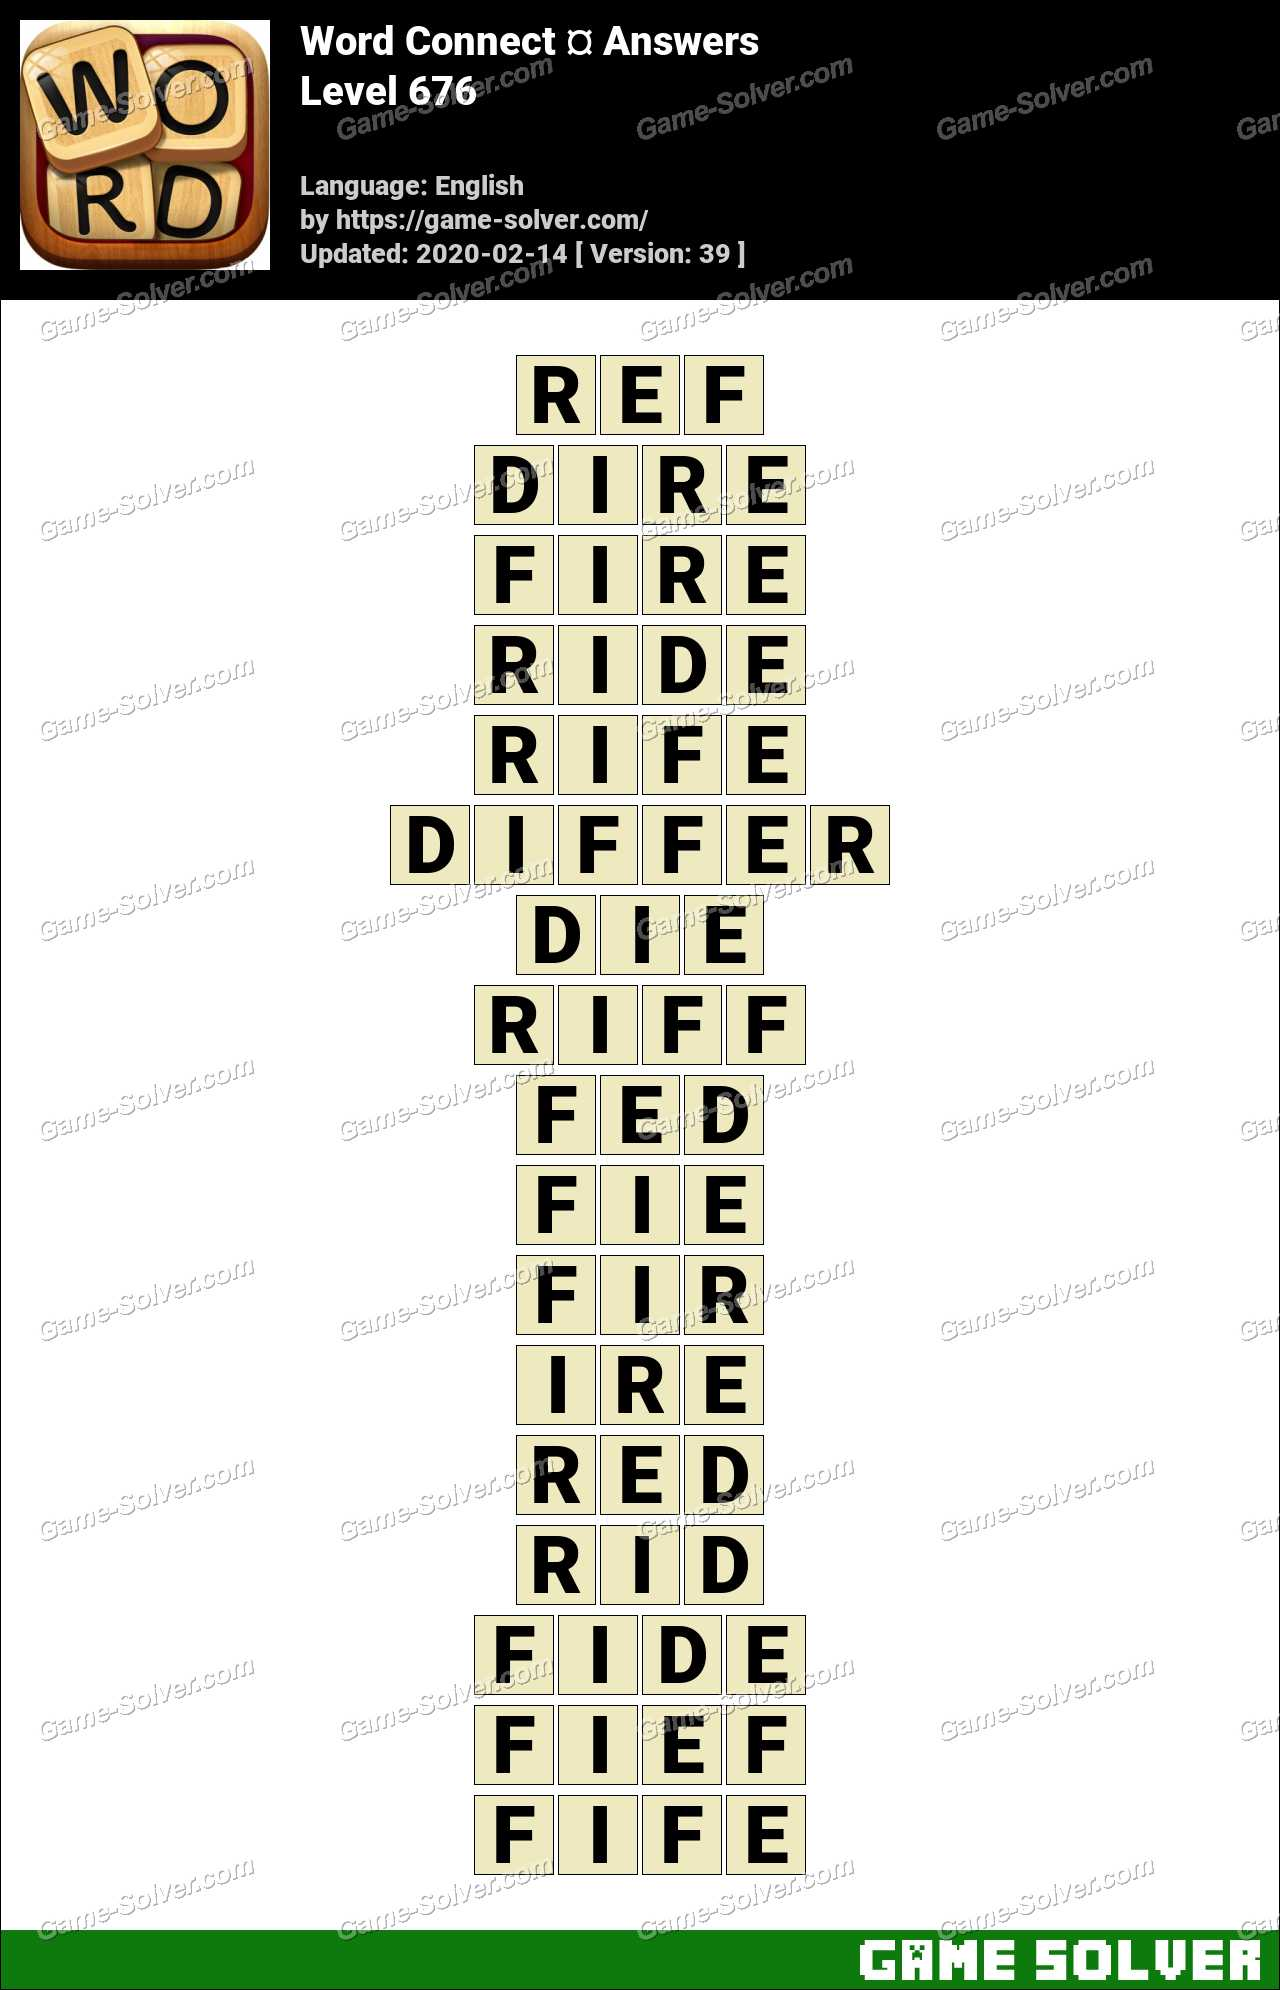 Word Connect Level 676 Answers